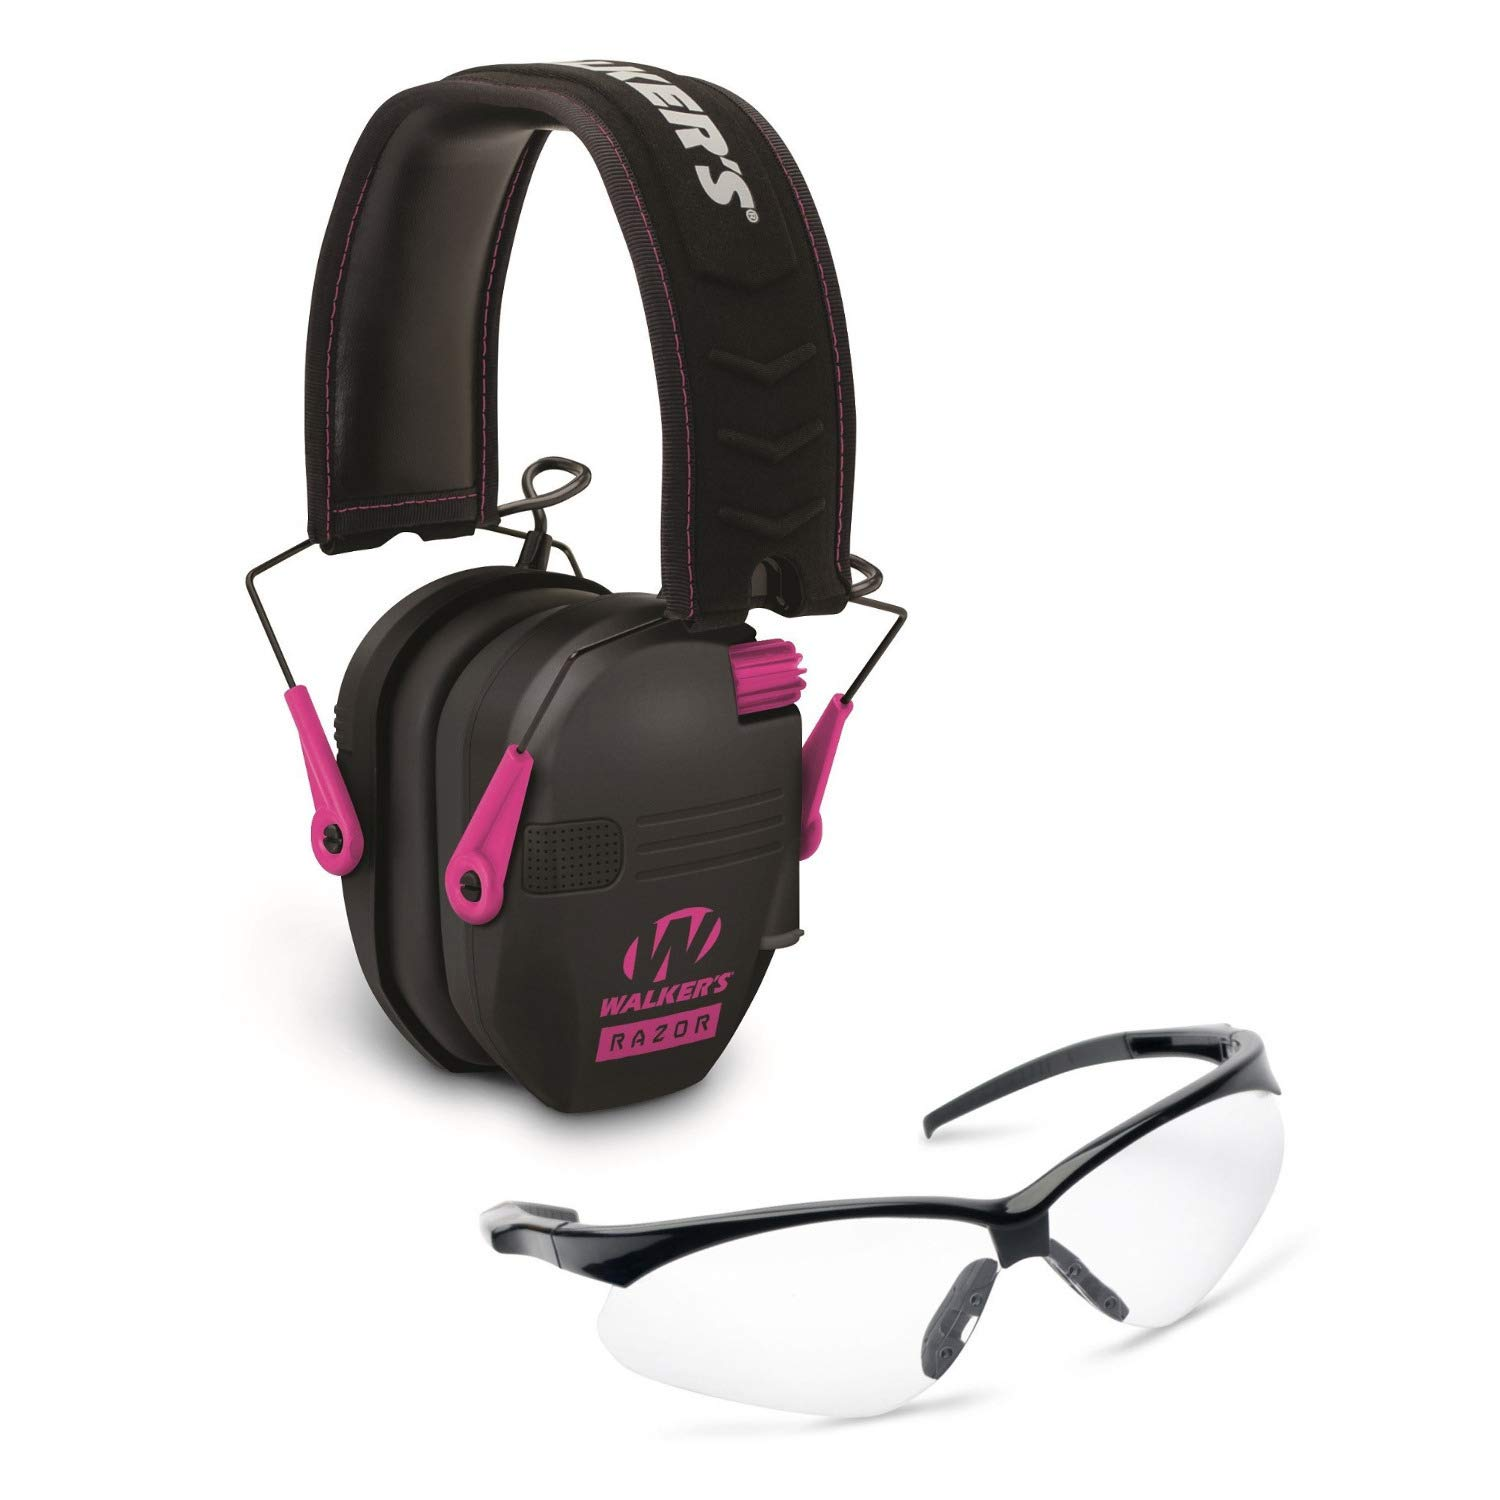 Walkers Razor Slim Electronic Hearing Protection Muffs with Sound Amplification and Suppression and Shooting Glasses Kit, Black/Pink by Walkers (Image #1)